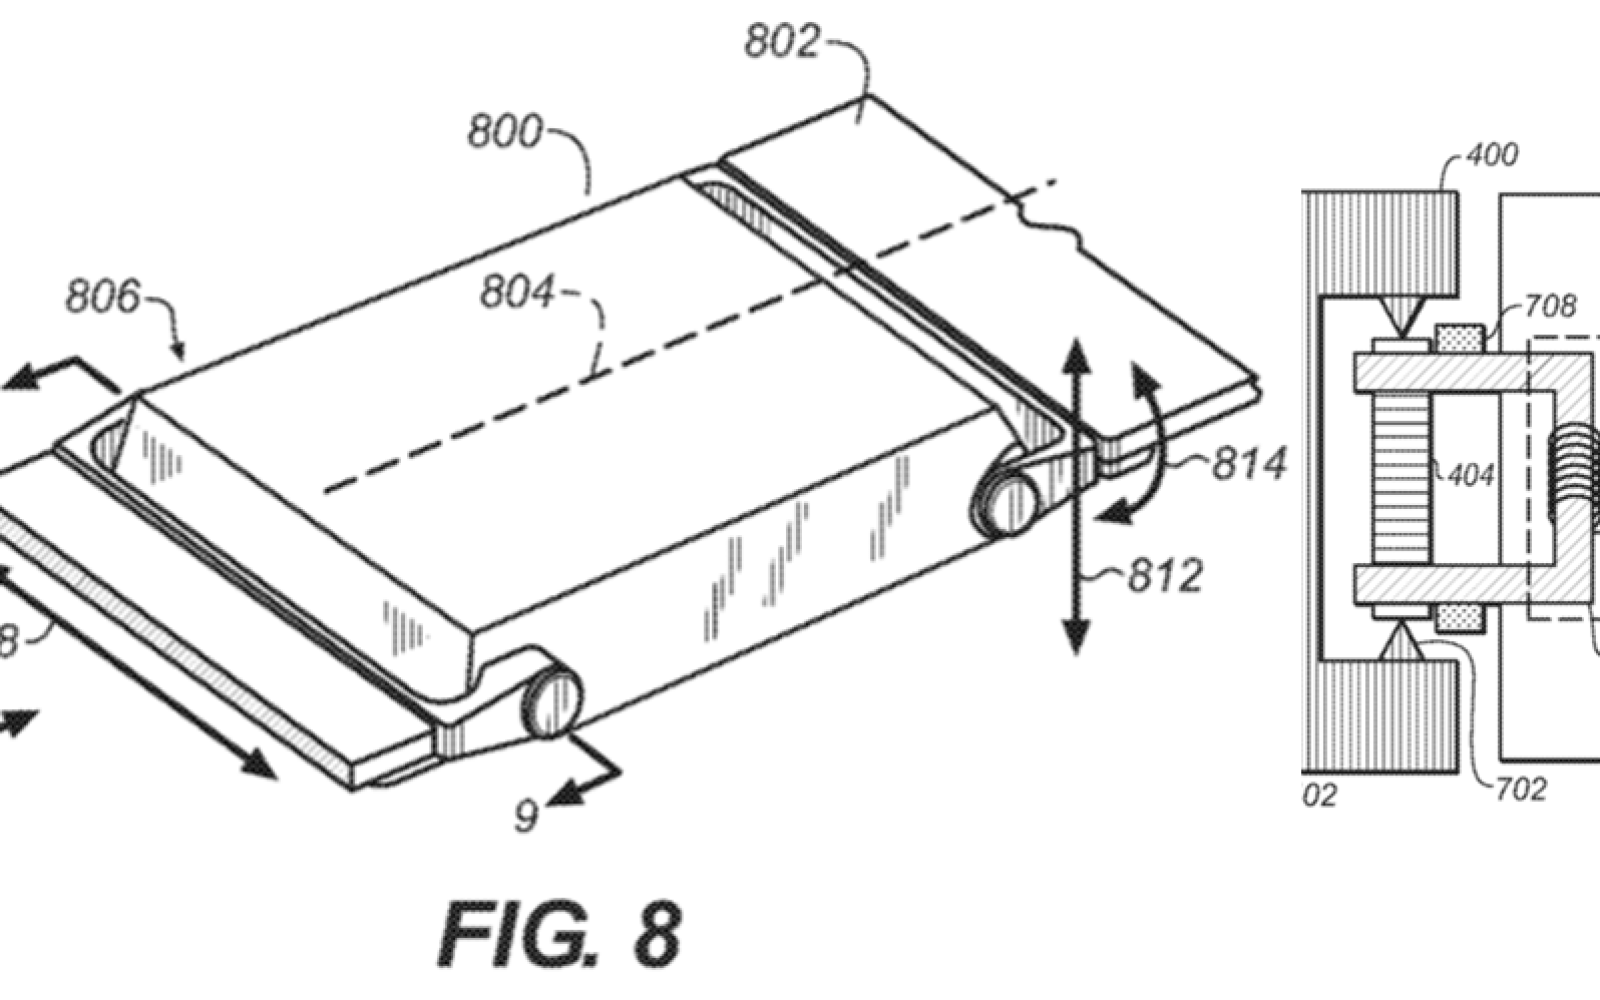 Future Apple Watch models could be slimmer as patent illustrates haptic motor in wristband